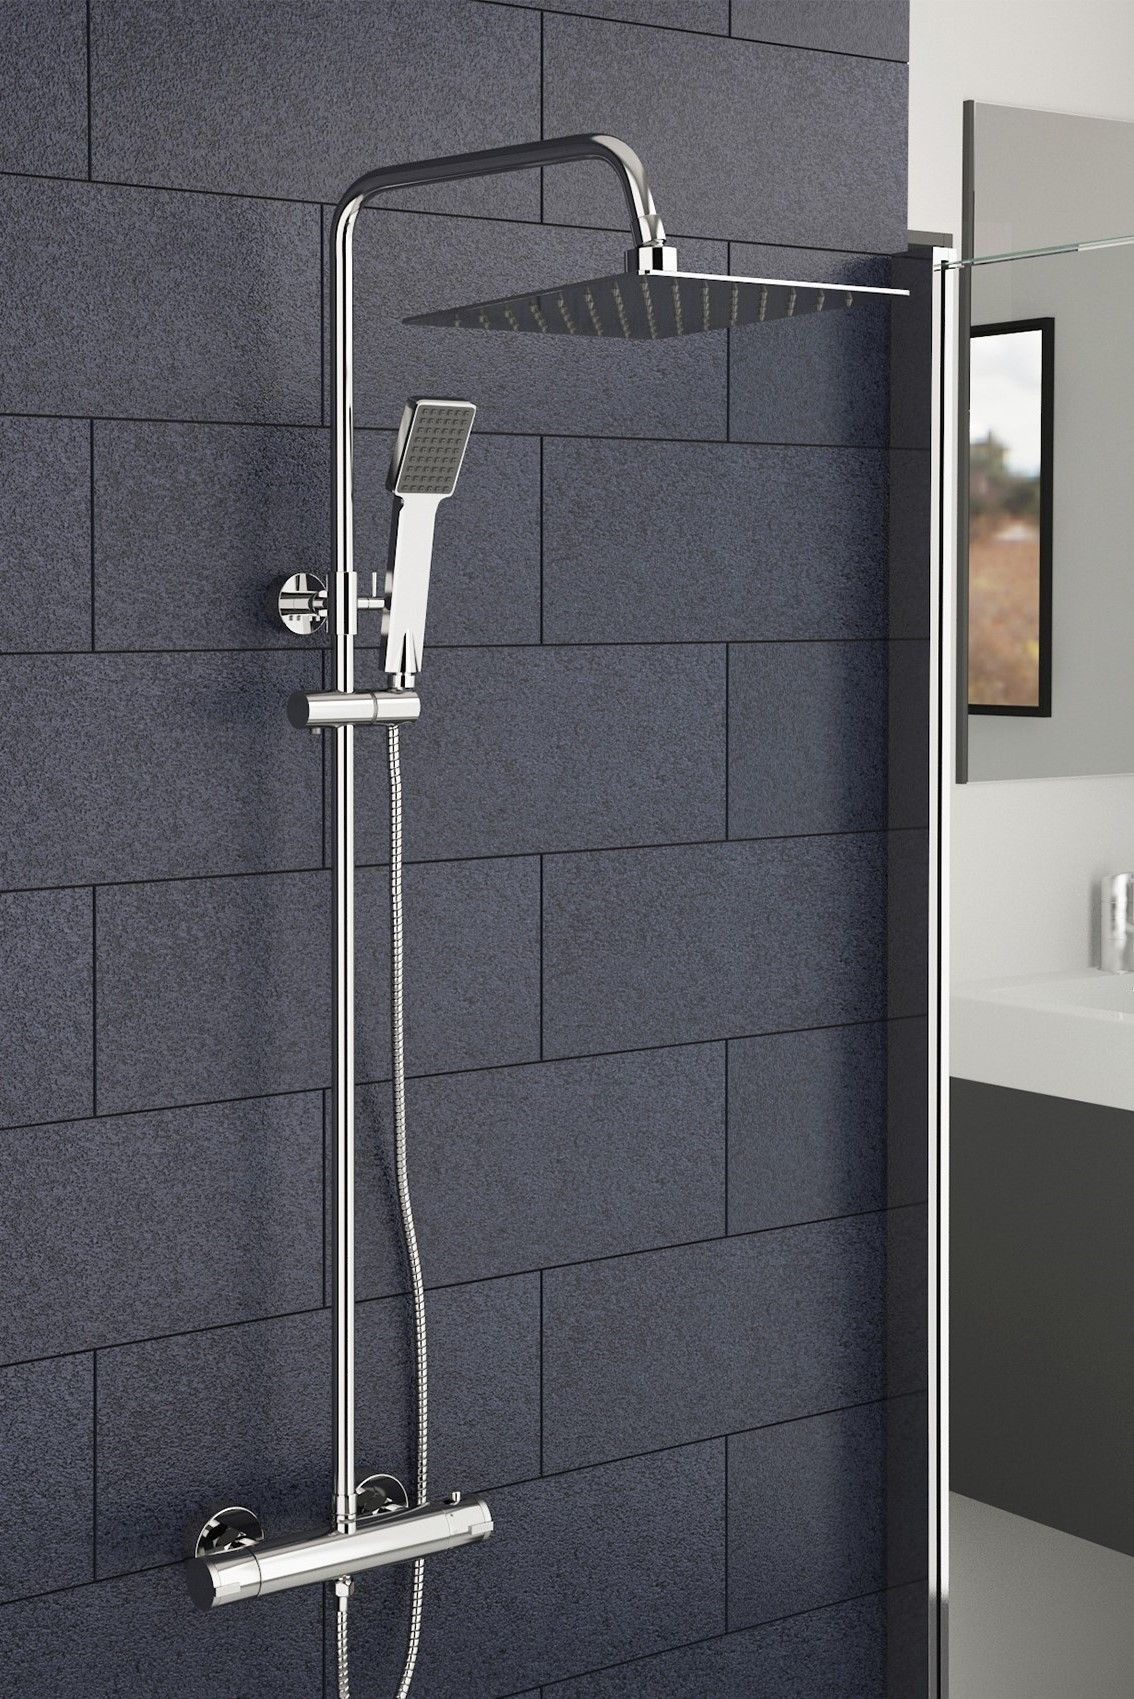 Triton Finish 5 Mode Shower Head.Dnieper Thermostatic Shower With Dual Shower Head Bathroom